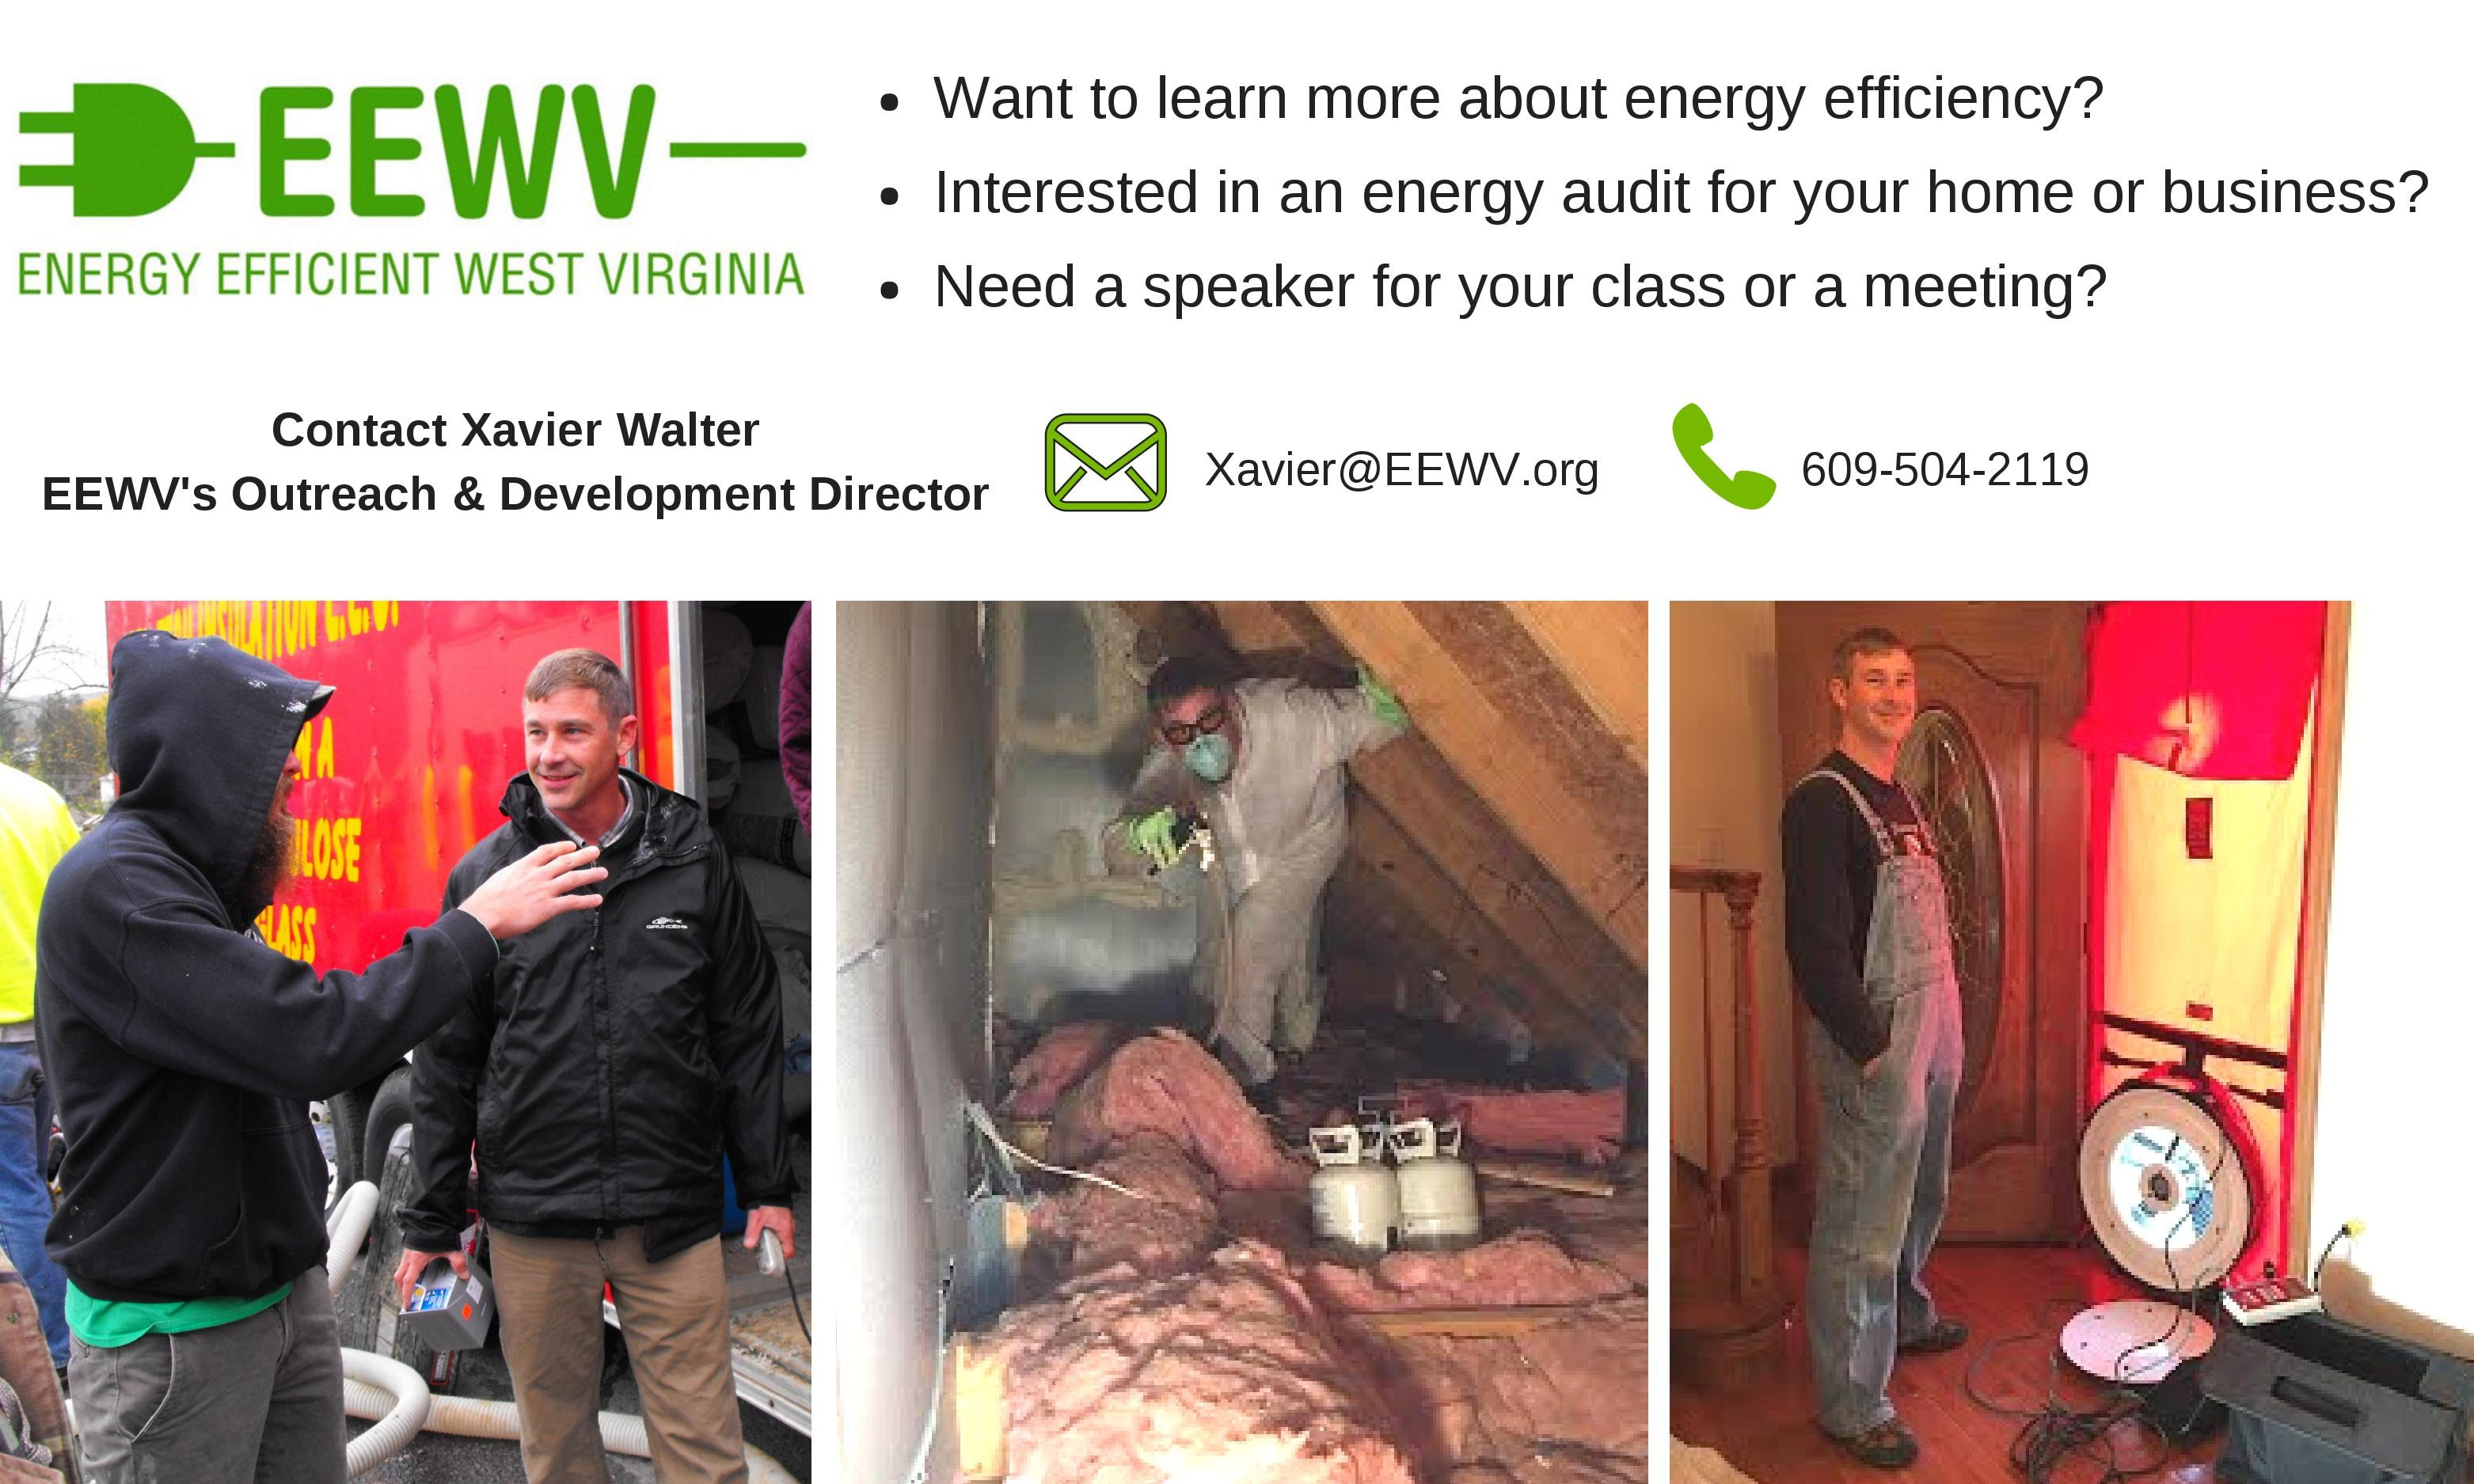 EEWV energy efficiency services